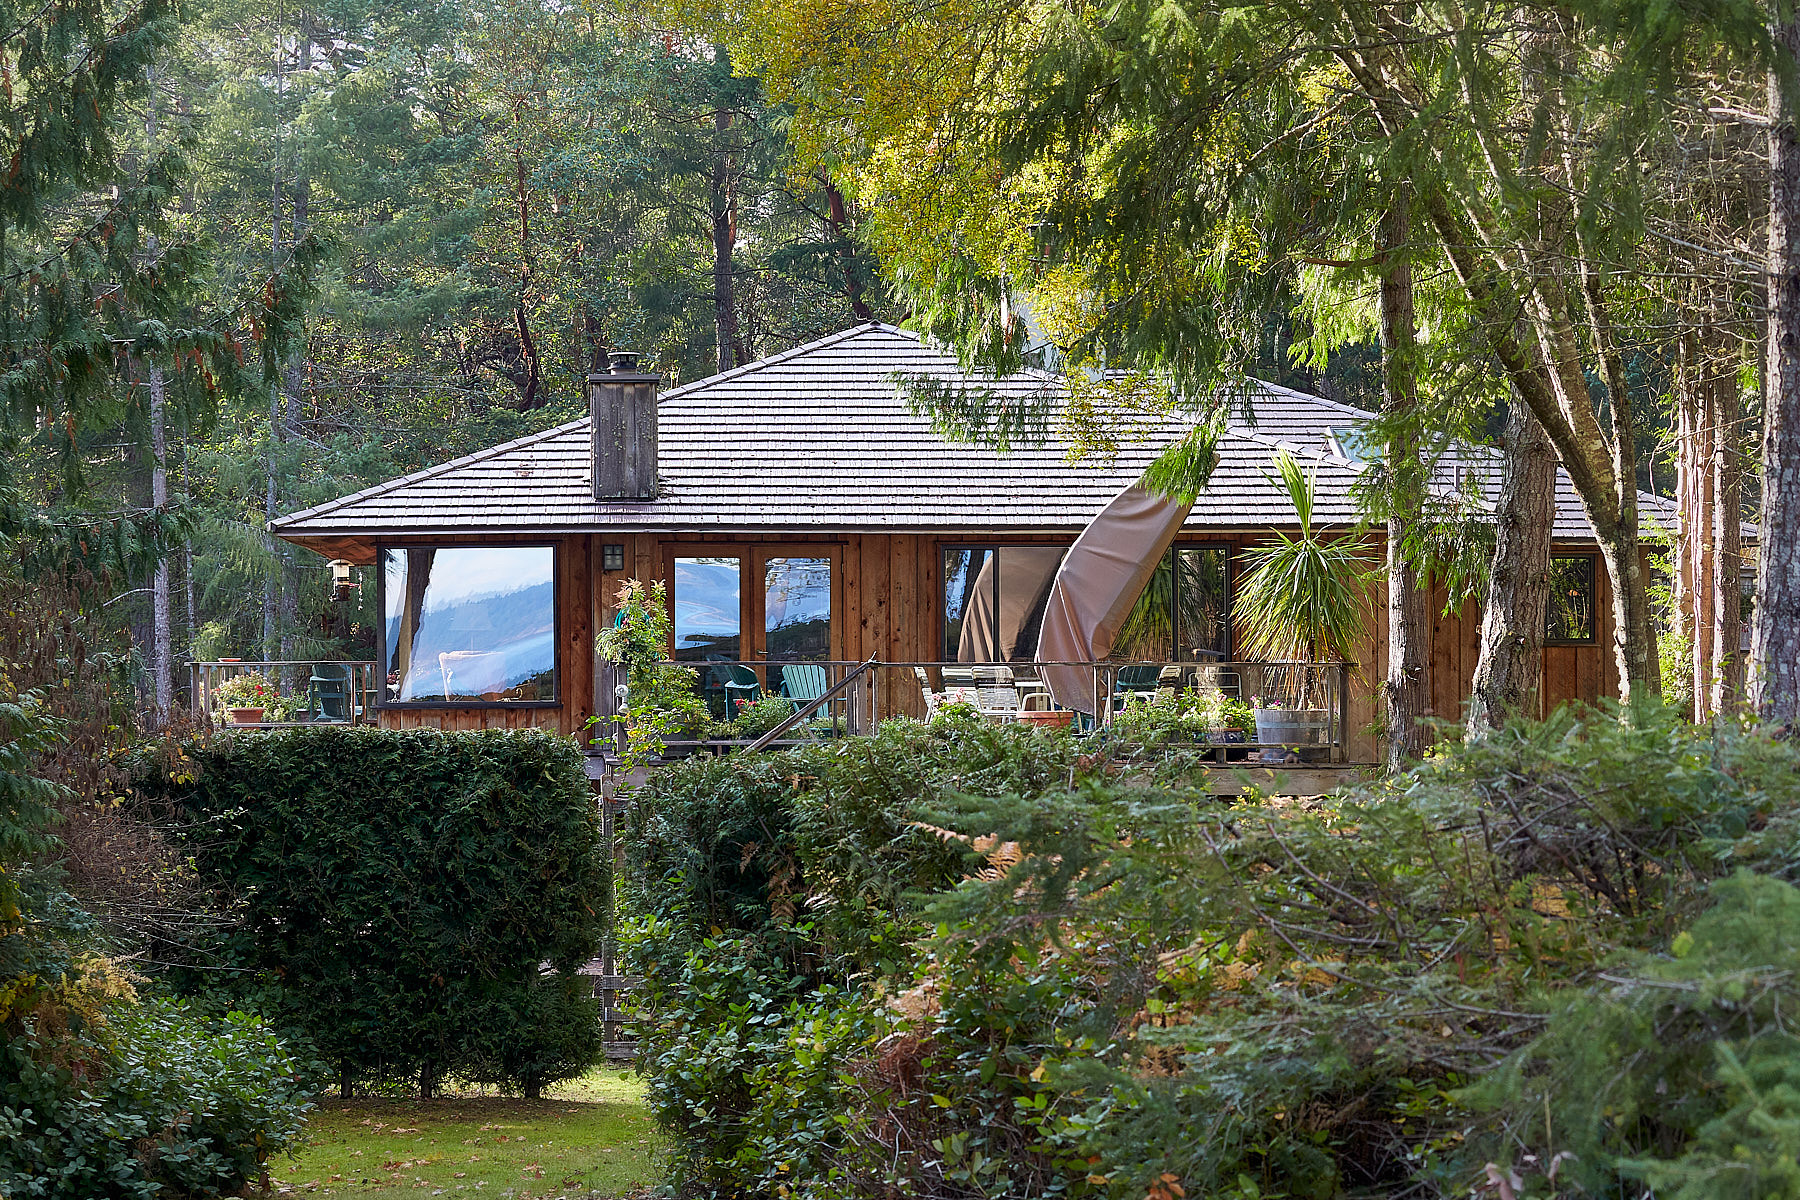 Casa Unifamiliar por un Venta en Ocean View Schubart 1240 Nose Point Road, Salt Spring Island, British Columbia, V8K 1K6 Canadá